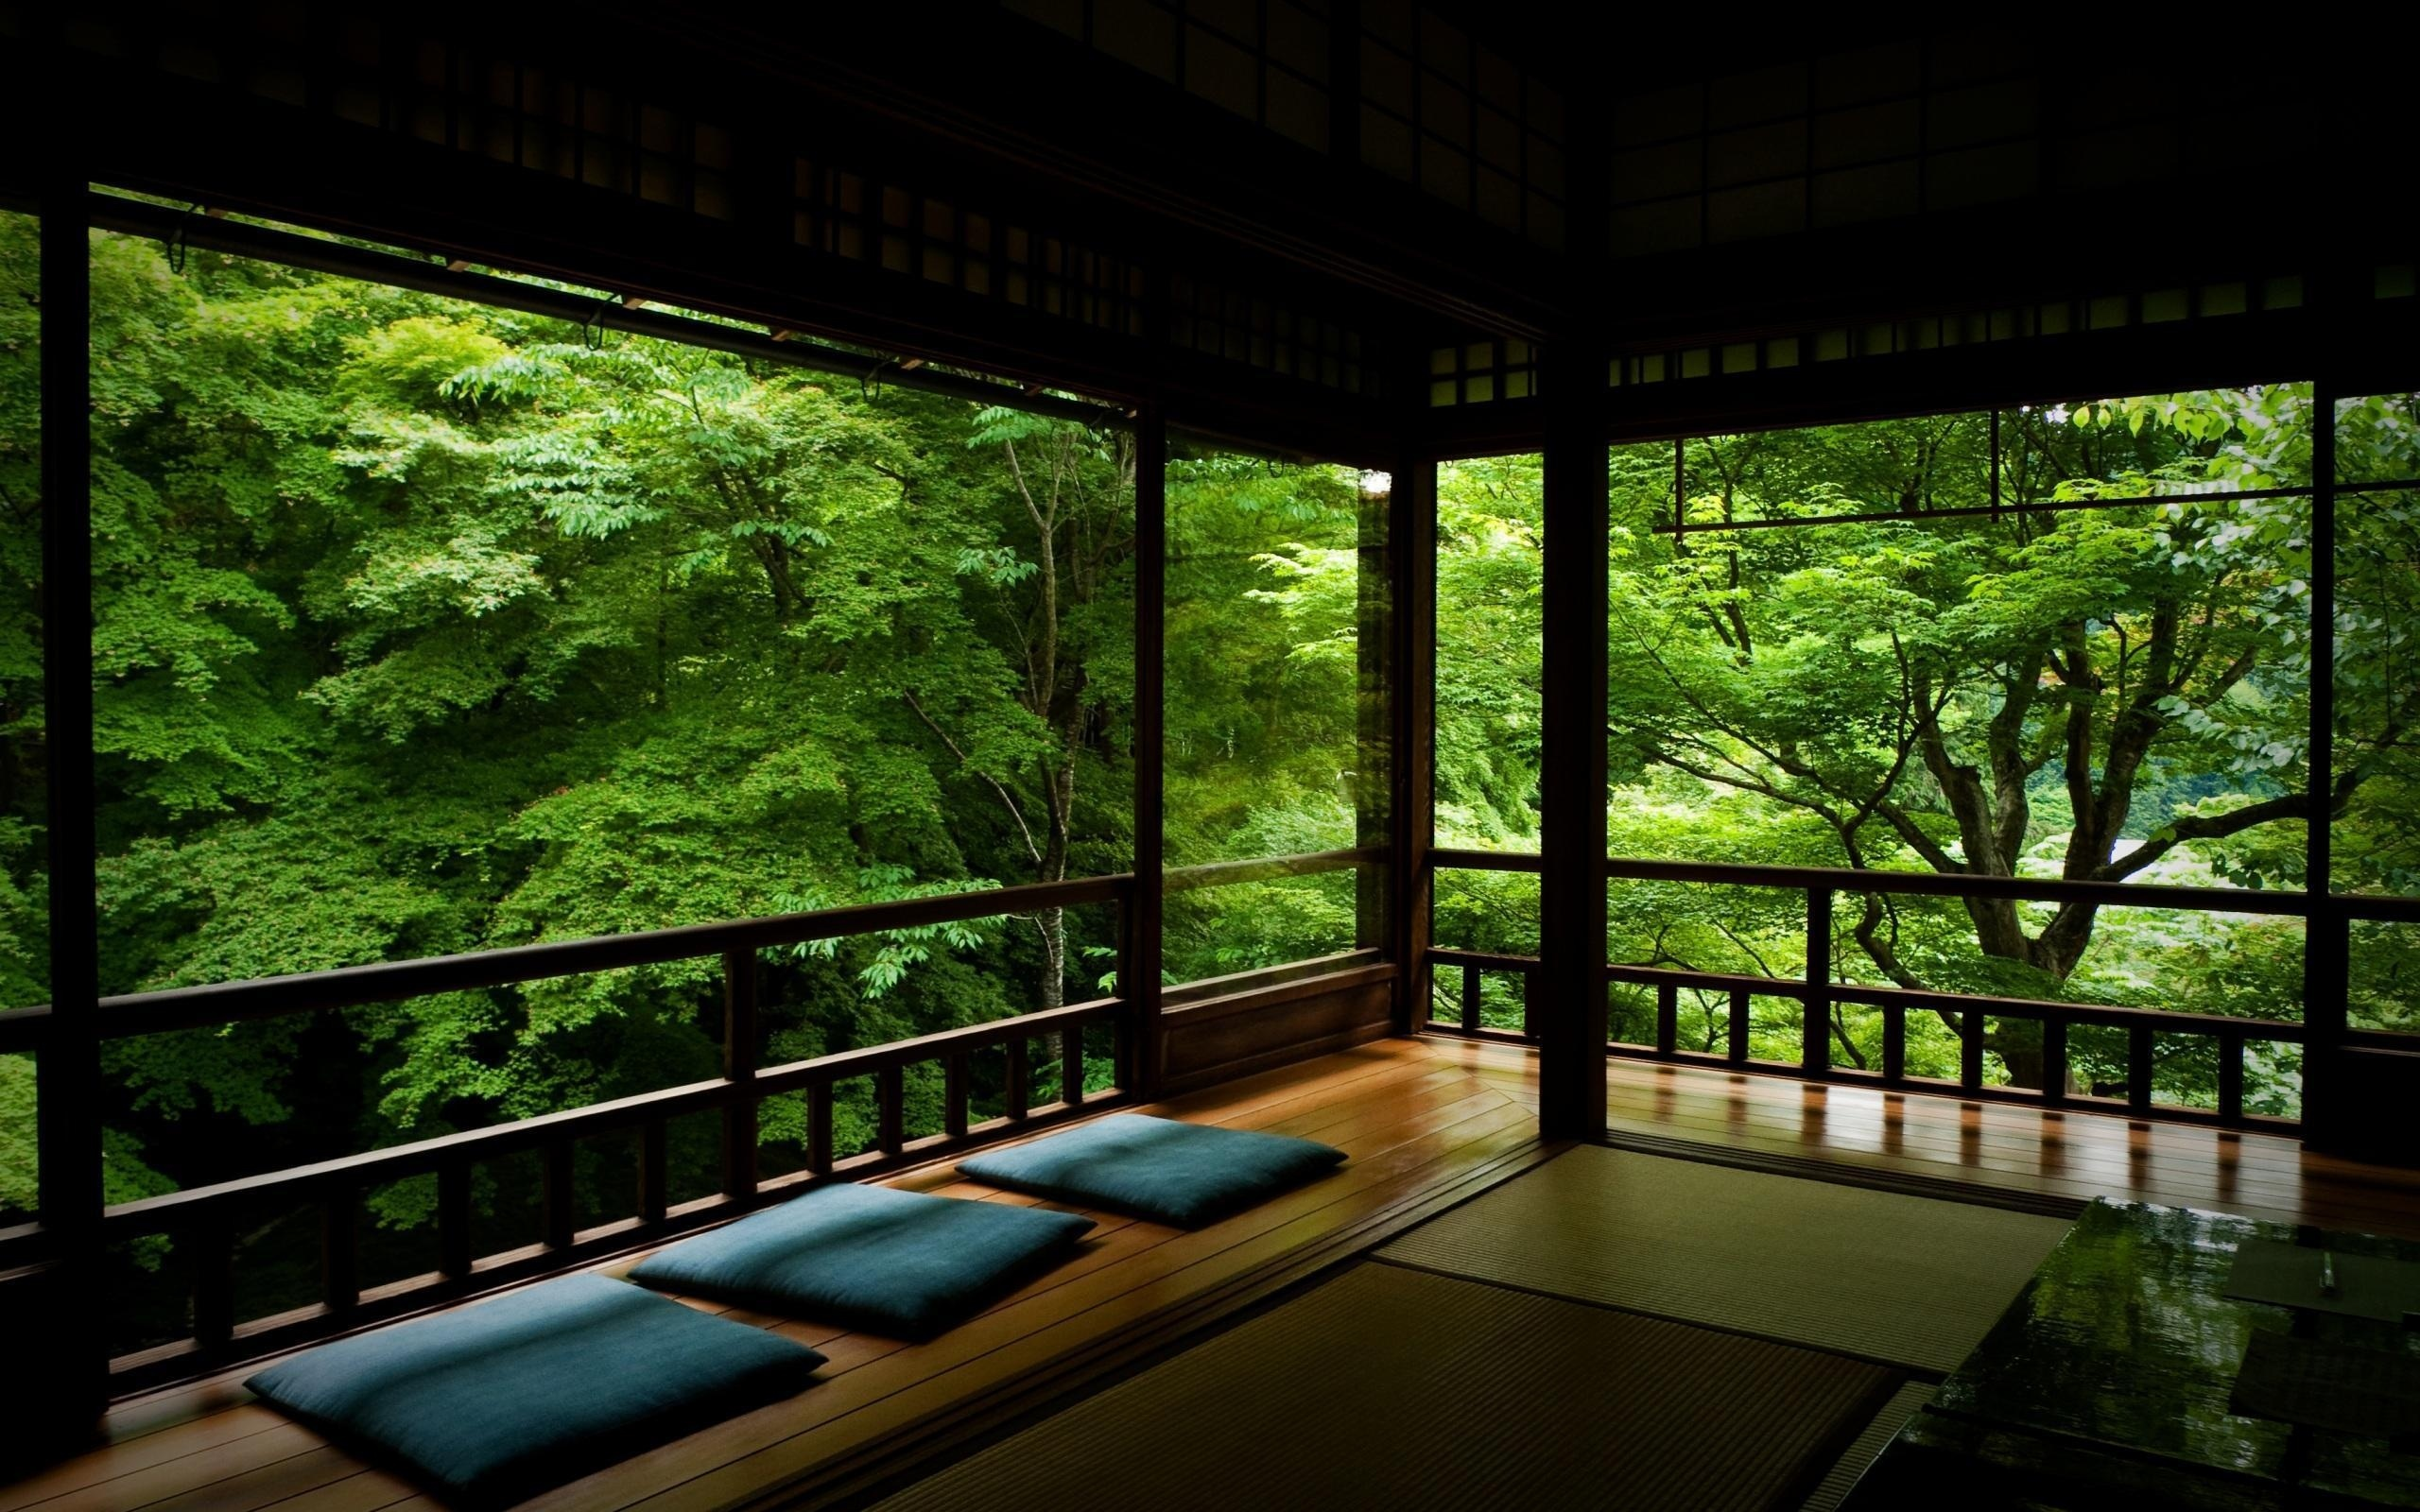 Meditation Room Decorating in open space